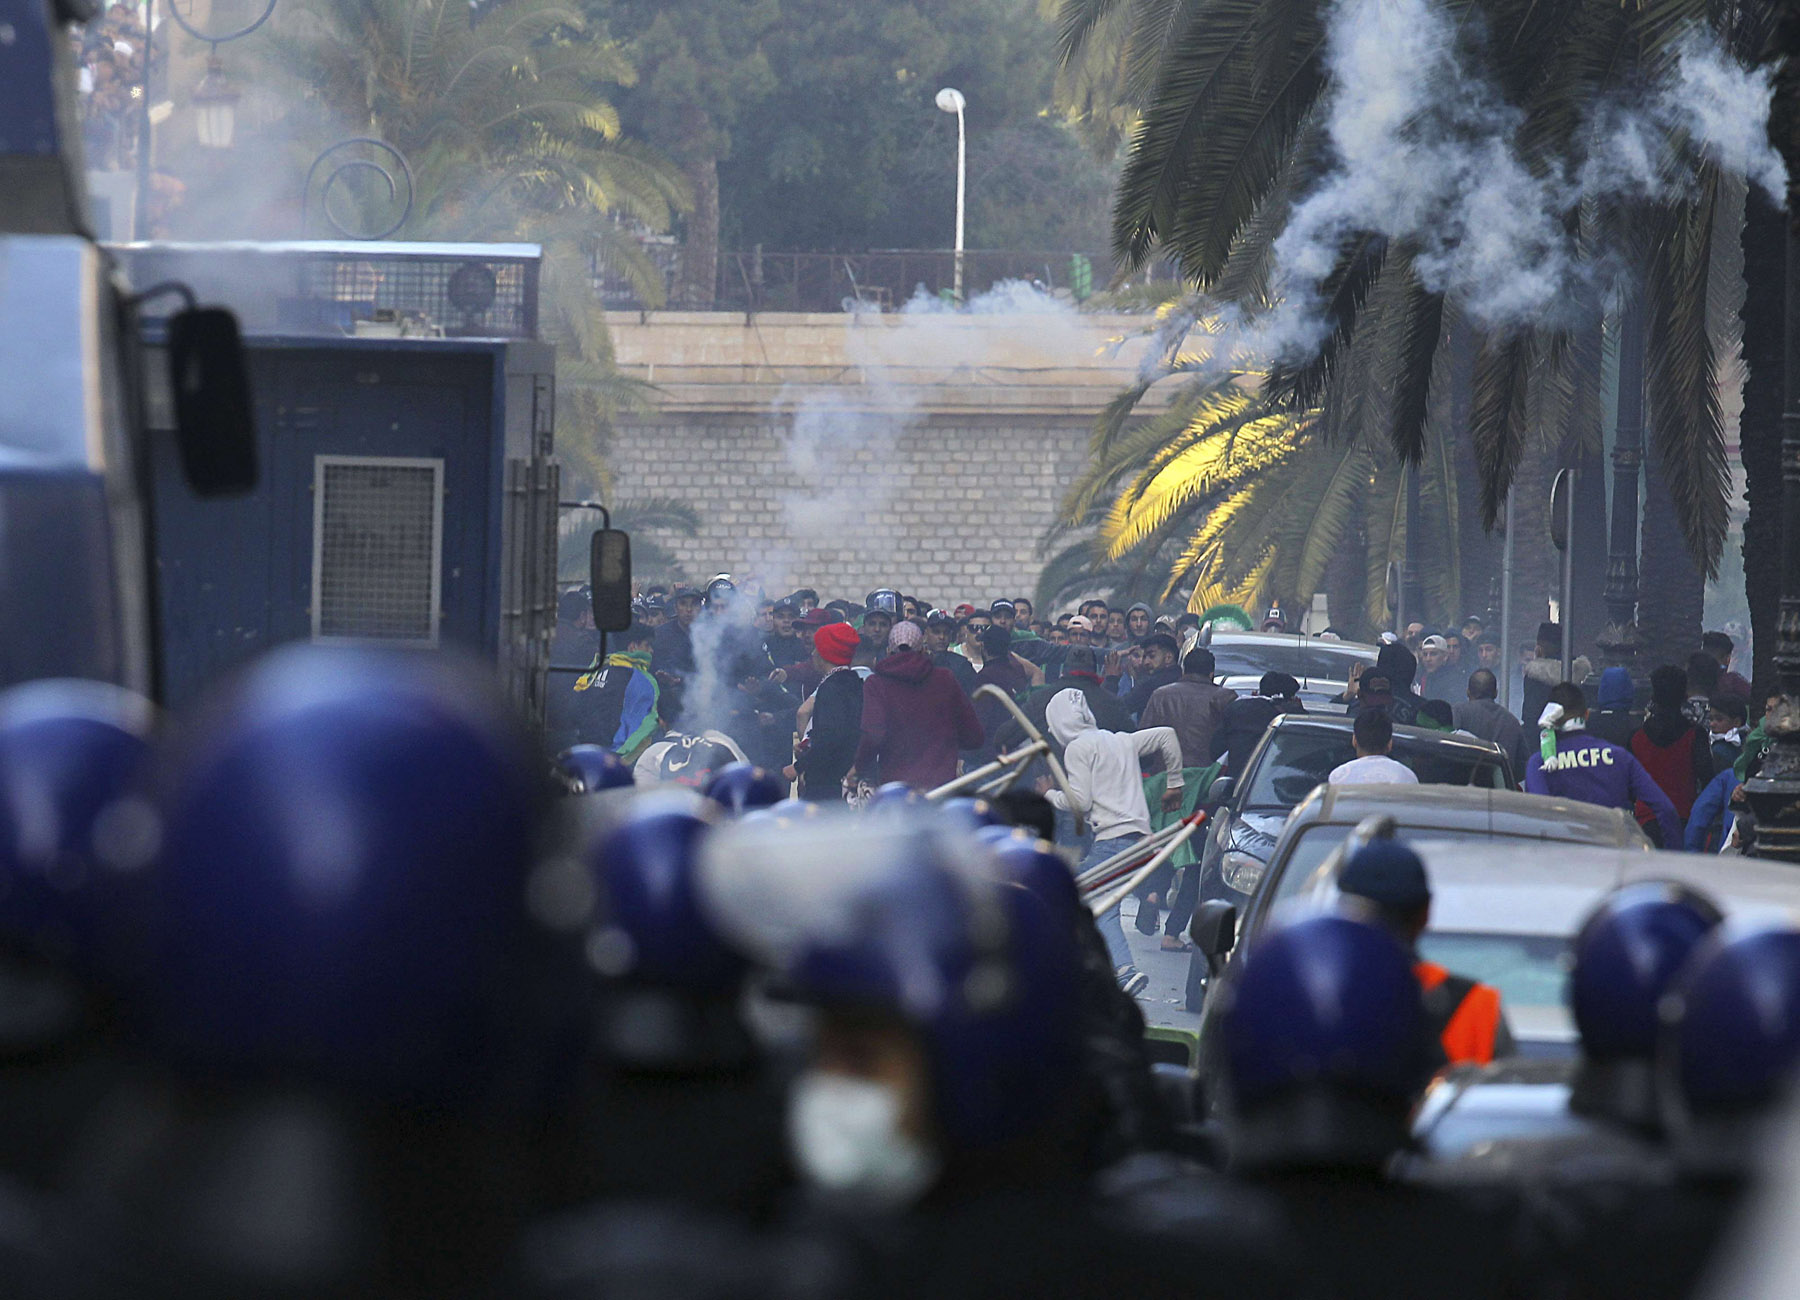 Teargas is used to disperse demonstrators during clashes with police in Algiers, Algeria, March 29, 2019. (AP)